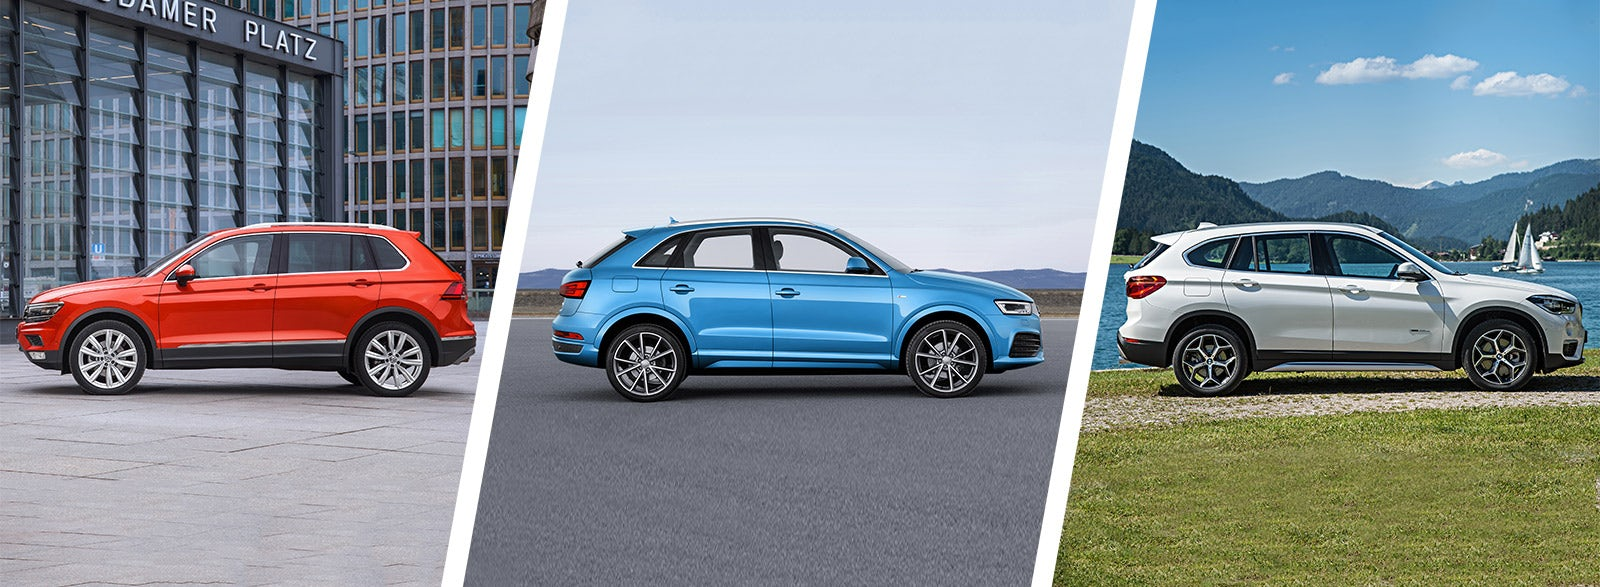 vw tiguan vs audi q3 vs bmw x1 comparison carwow. Black Bedroom Furniture Sets. Home Design Ideas